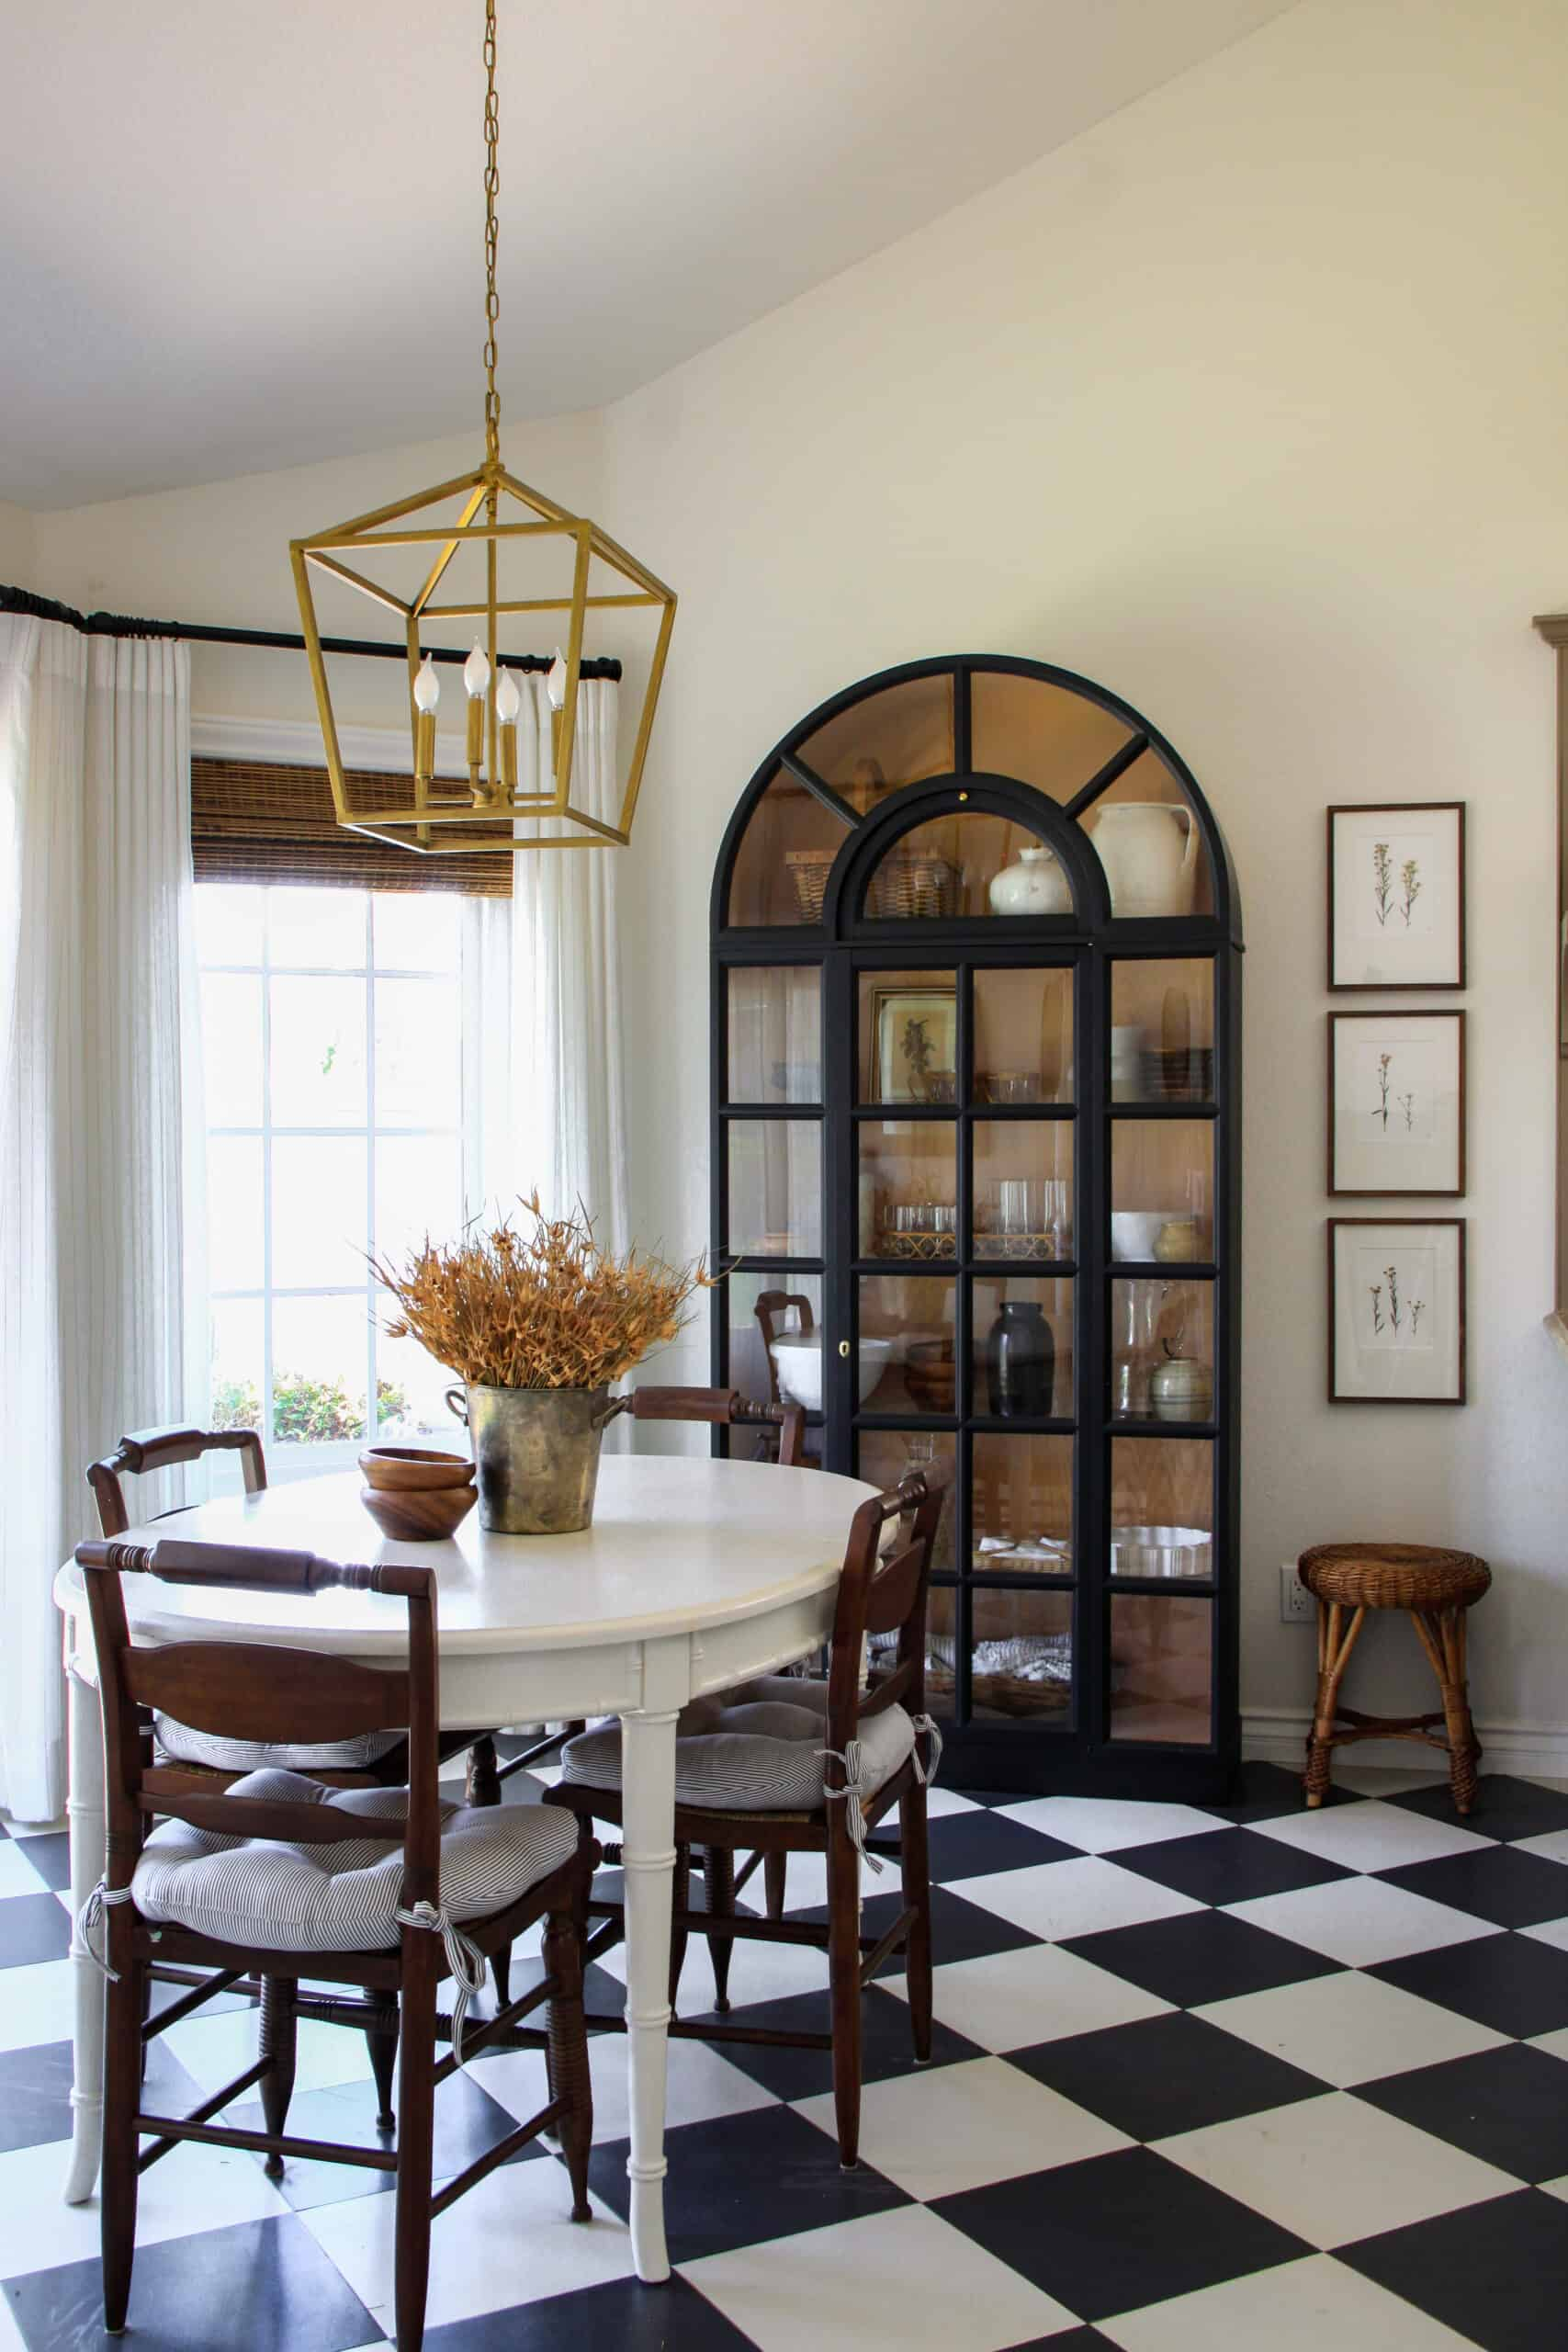 breakfast nook with checkered floors, white table, black cabinet and gold light fixture